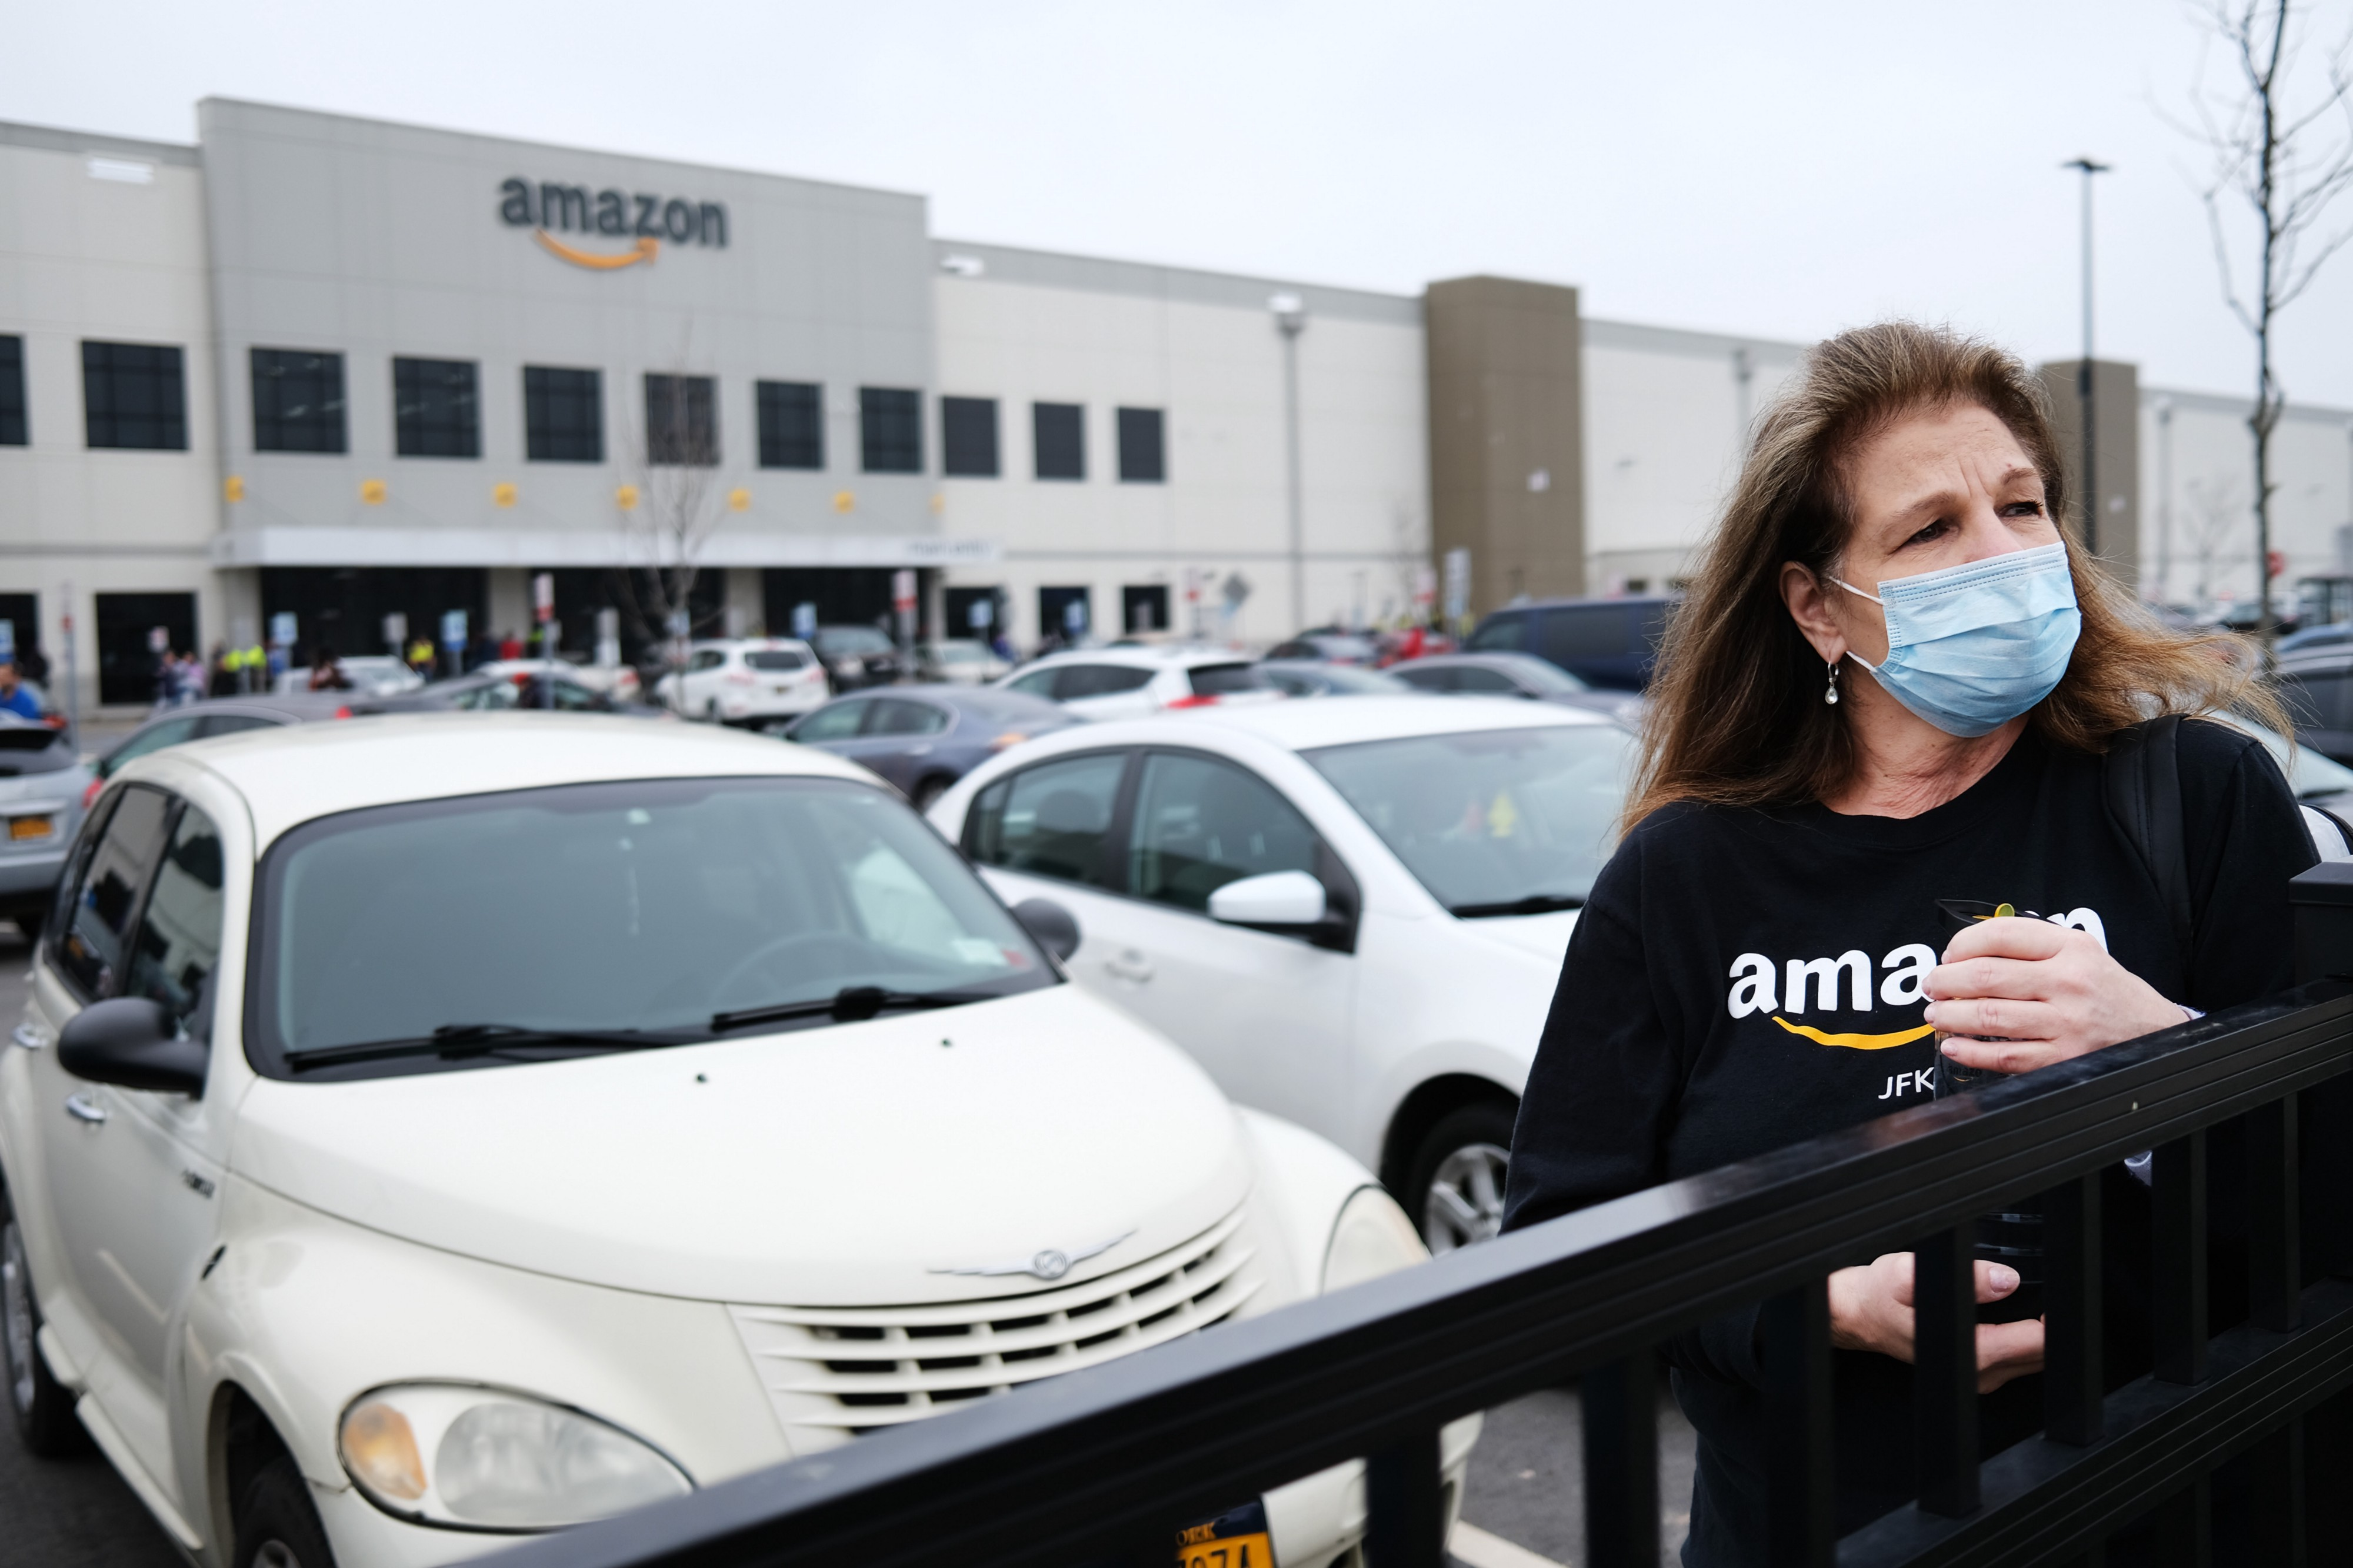 An Amazon employee wears a mask outside of the Staten Island warehouse during a walkout over lack of employee protection.